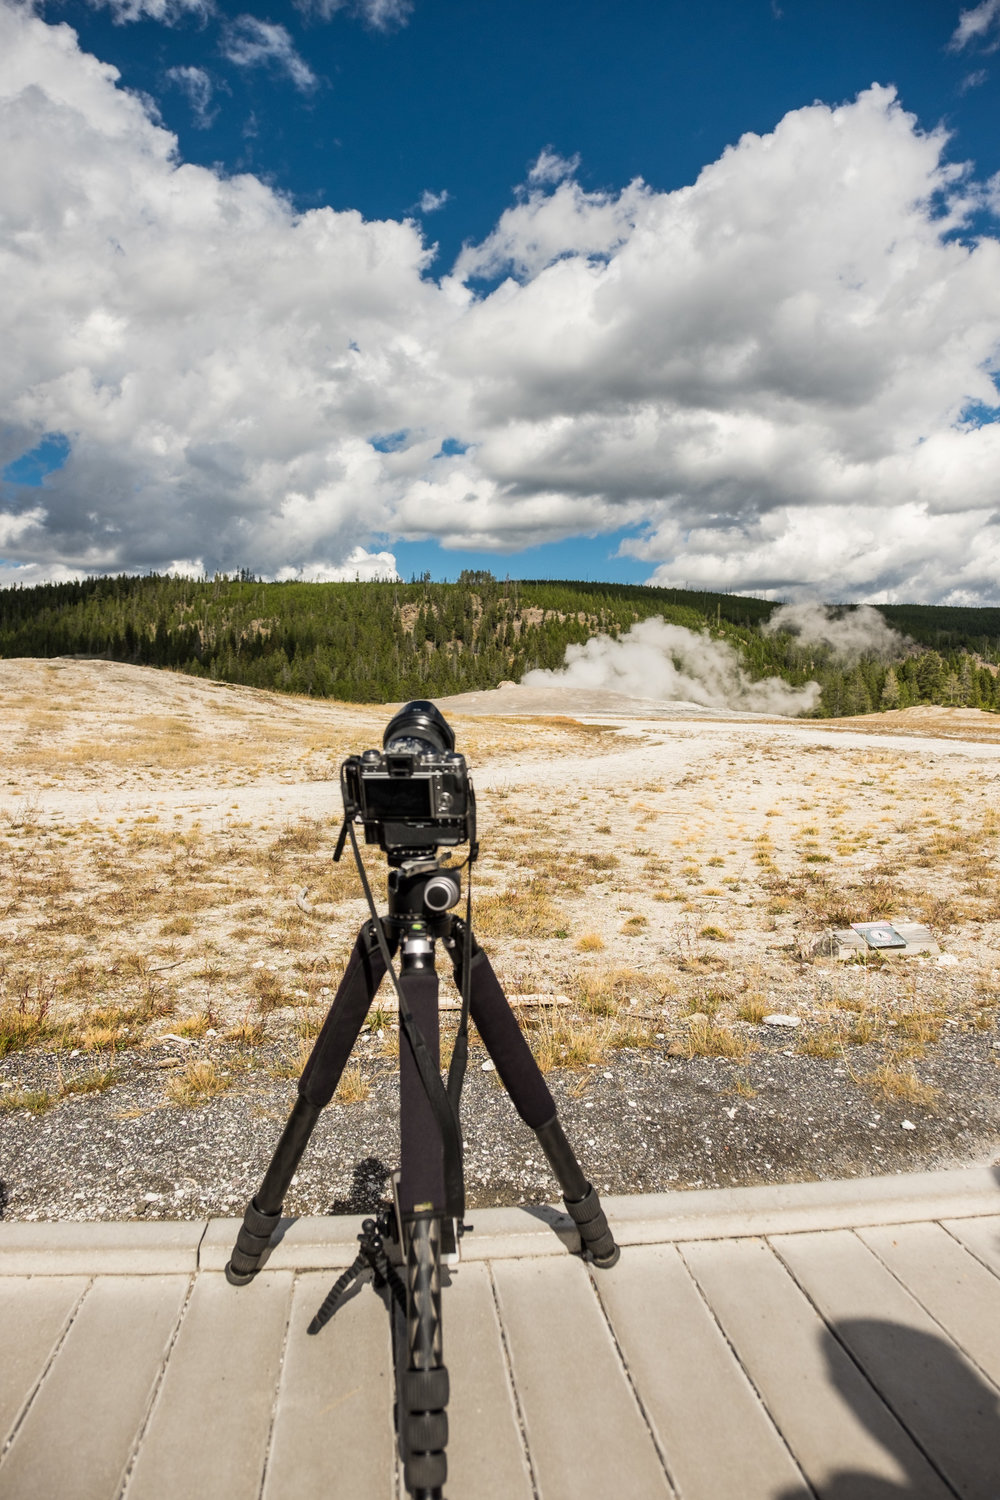 Capturing timelapse of geysers in Yellowstone National Park in Montana/Idaho/Wyoming.